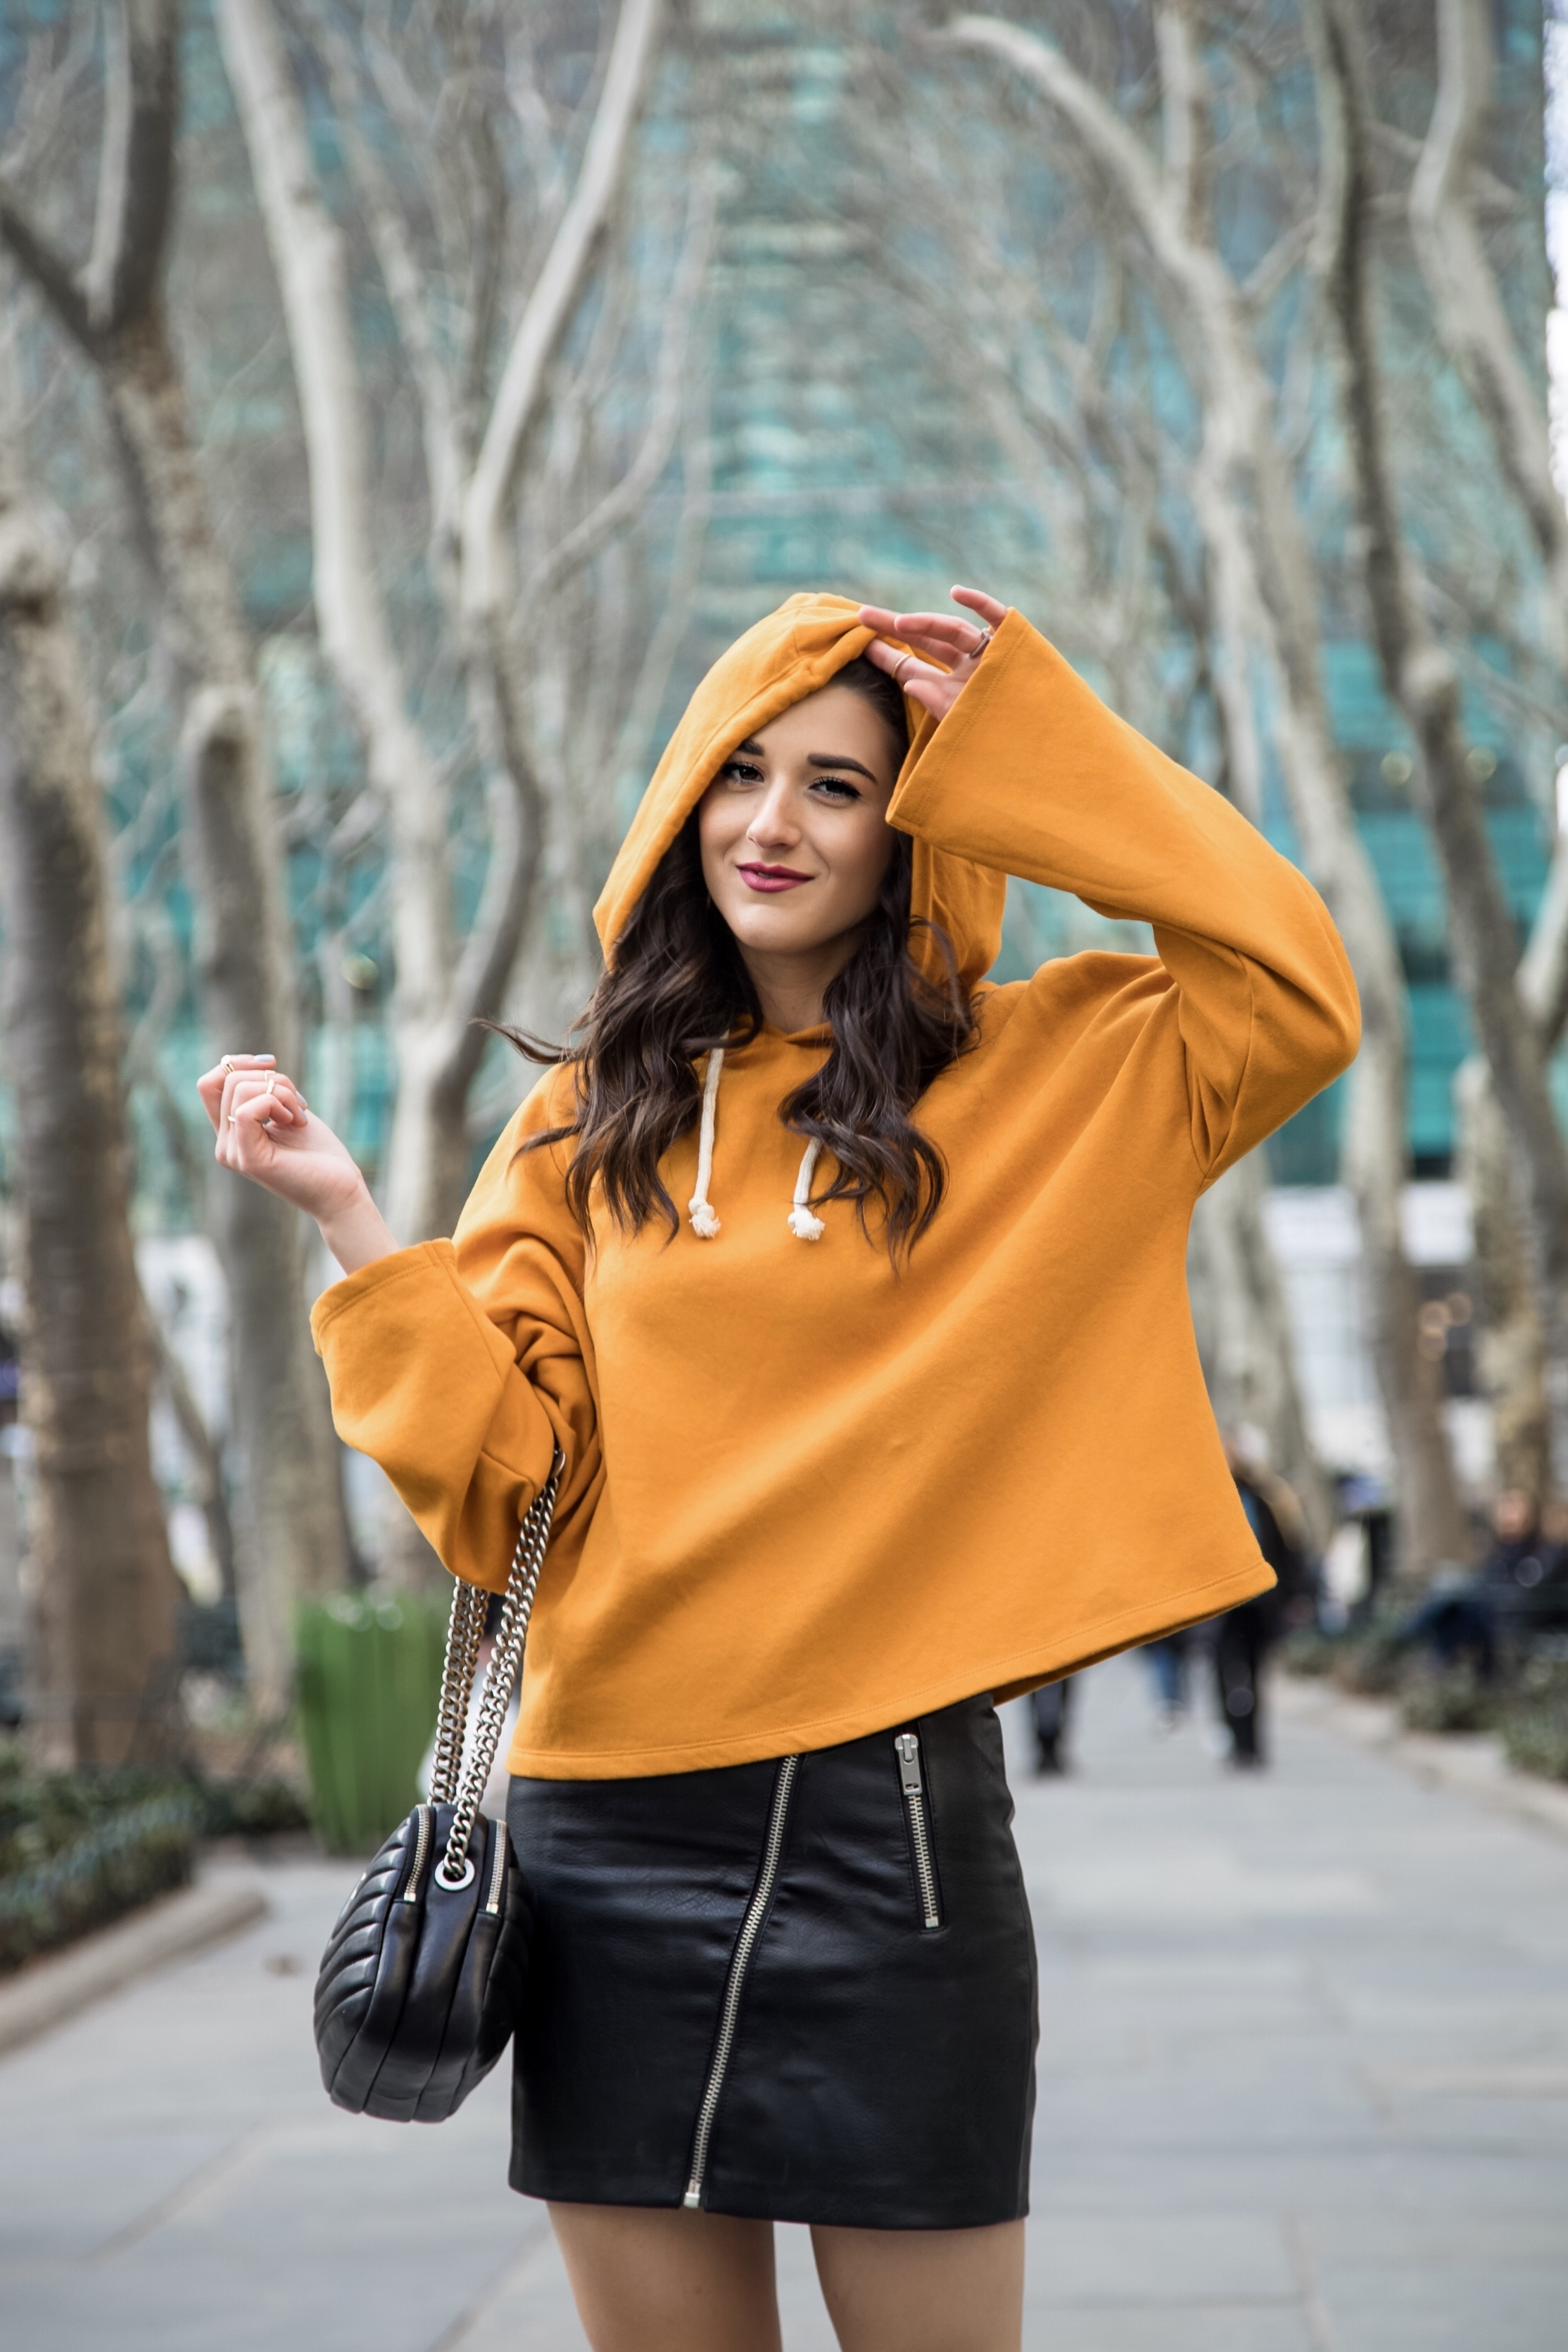 How Blogging Affected My Self Confidence Yellow Sweatshirt Black Pleather Skirt Esther Santer Fashion Blog NYC Street Style Blogger Outfit OOTD Trendy Zara ASOS Hairstyle Sporty Girly Open Toe Booties Shopping Buy Wear Fall Winter Hood Mustard Color.jpg